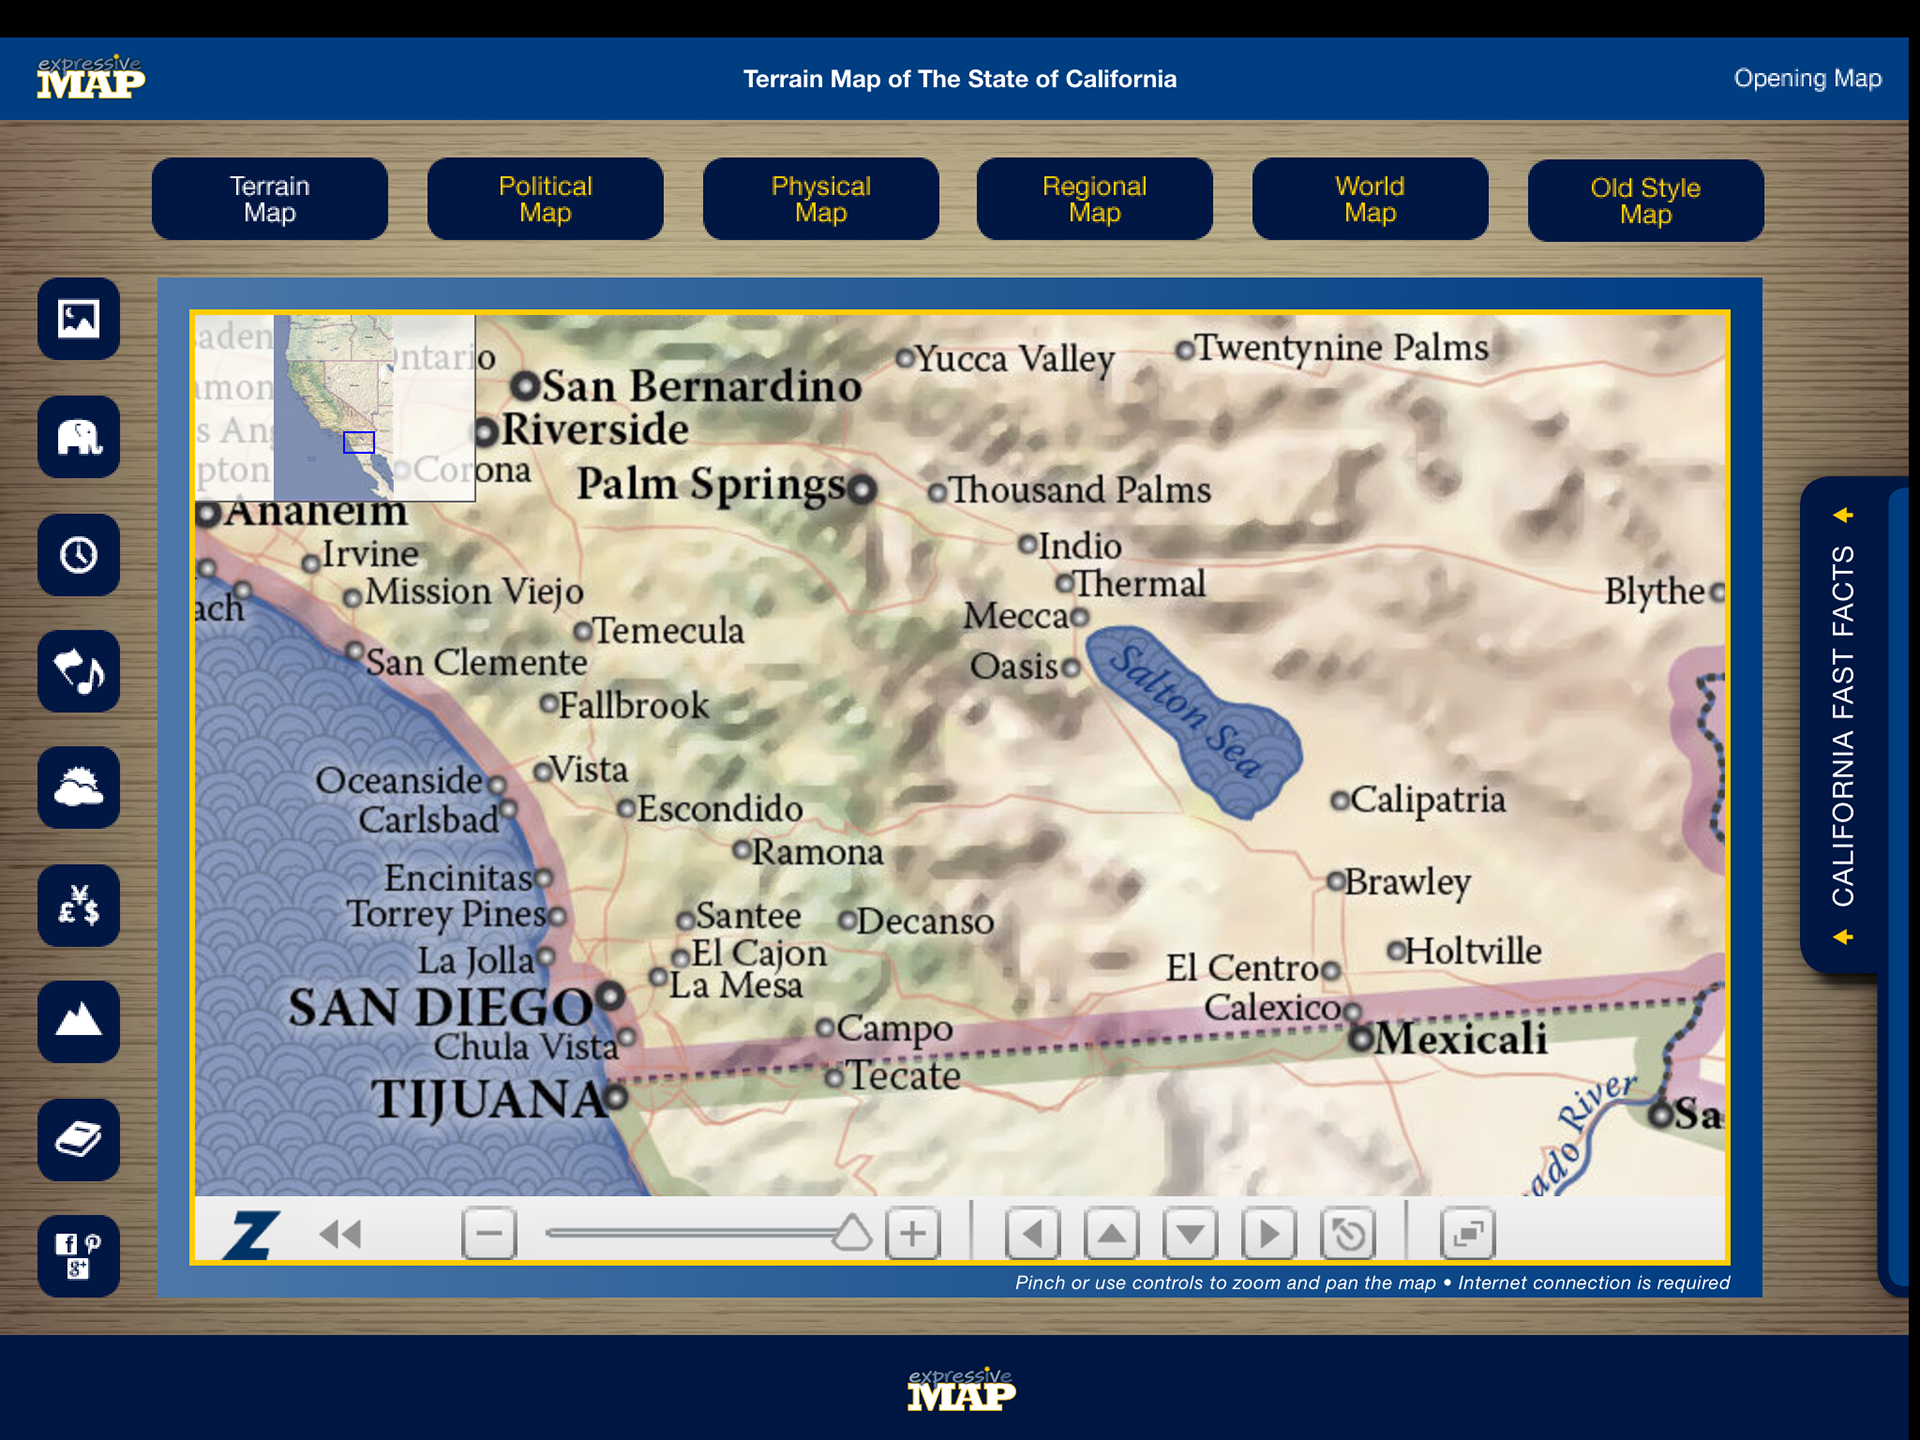 Eric olason mapmaker cartographic artist app california i have since made a decision to no longer work creating apps in favor of making oversize wall maps for business home and office under the same brand name gumiabroncs Choice Image